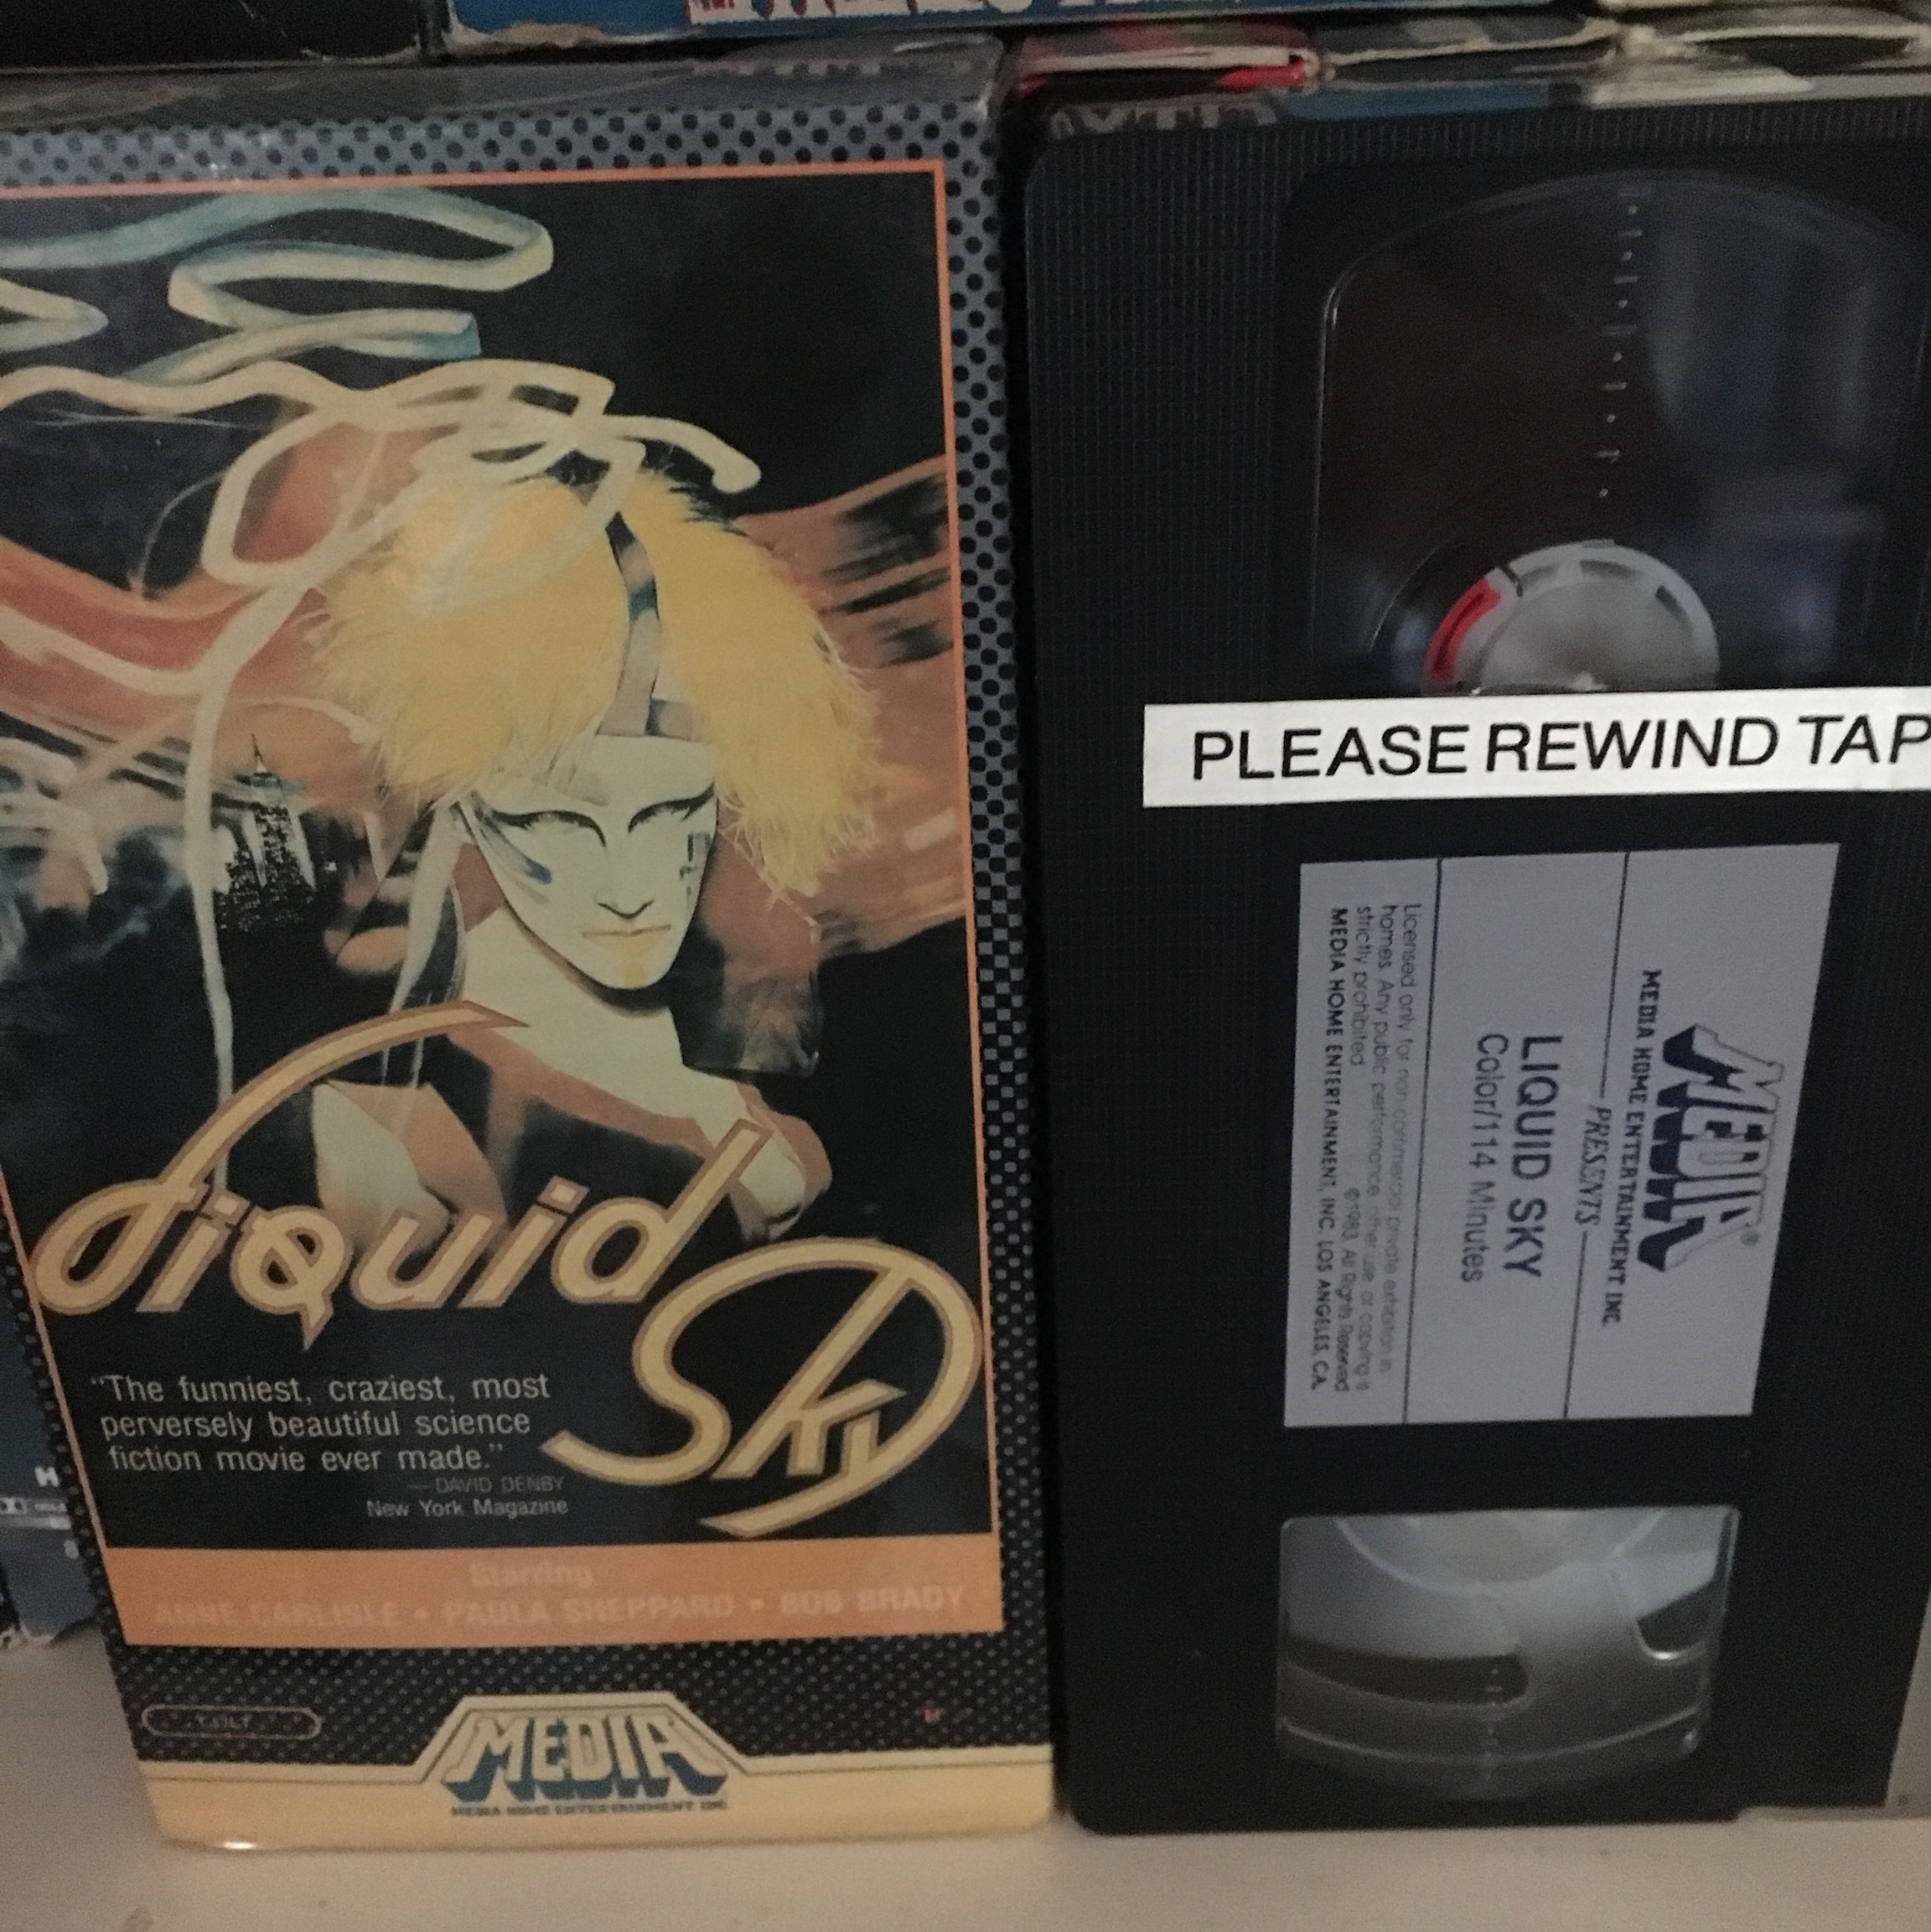 Liquid Sky VHS Cover is slightly faded but in good    - Depop